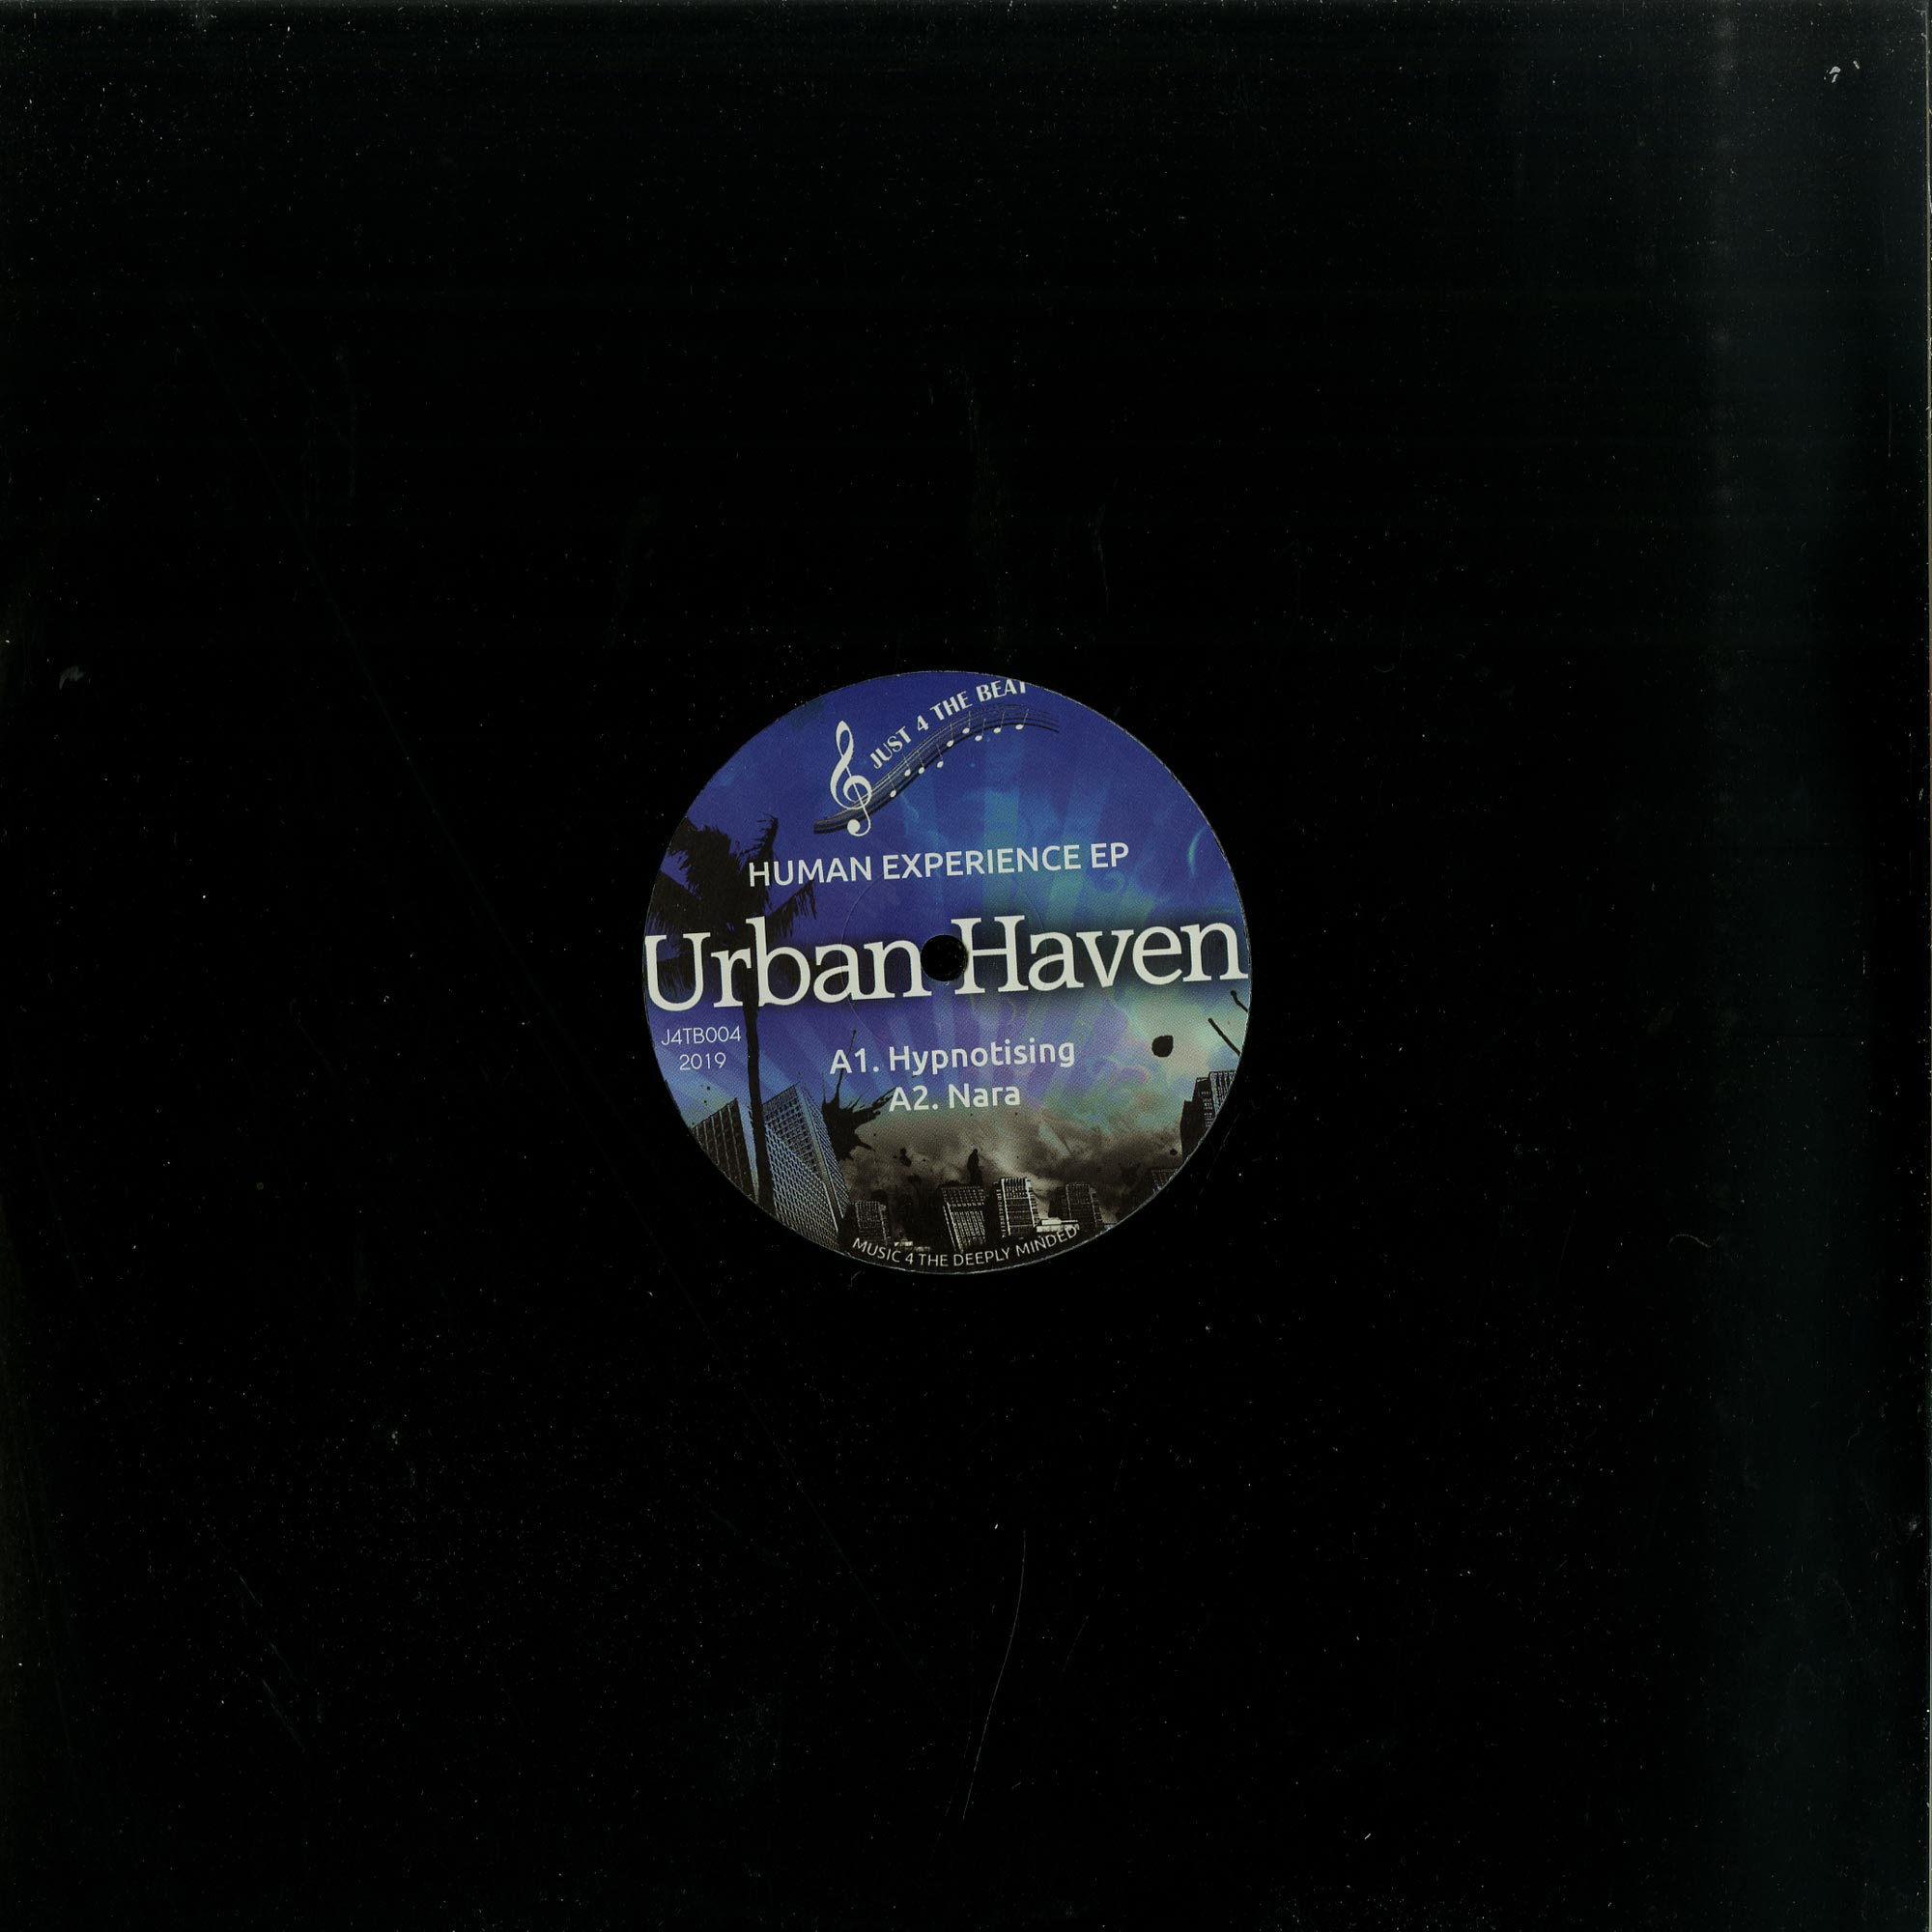 Urban Haven - HUMAN EXPERIENCE EP